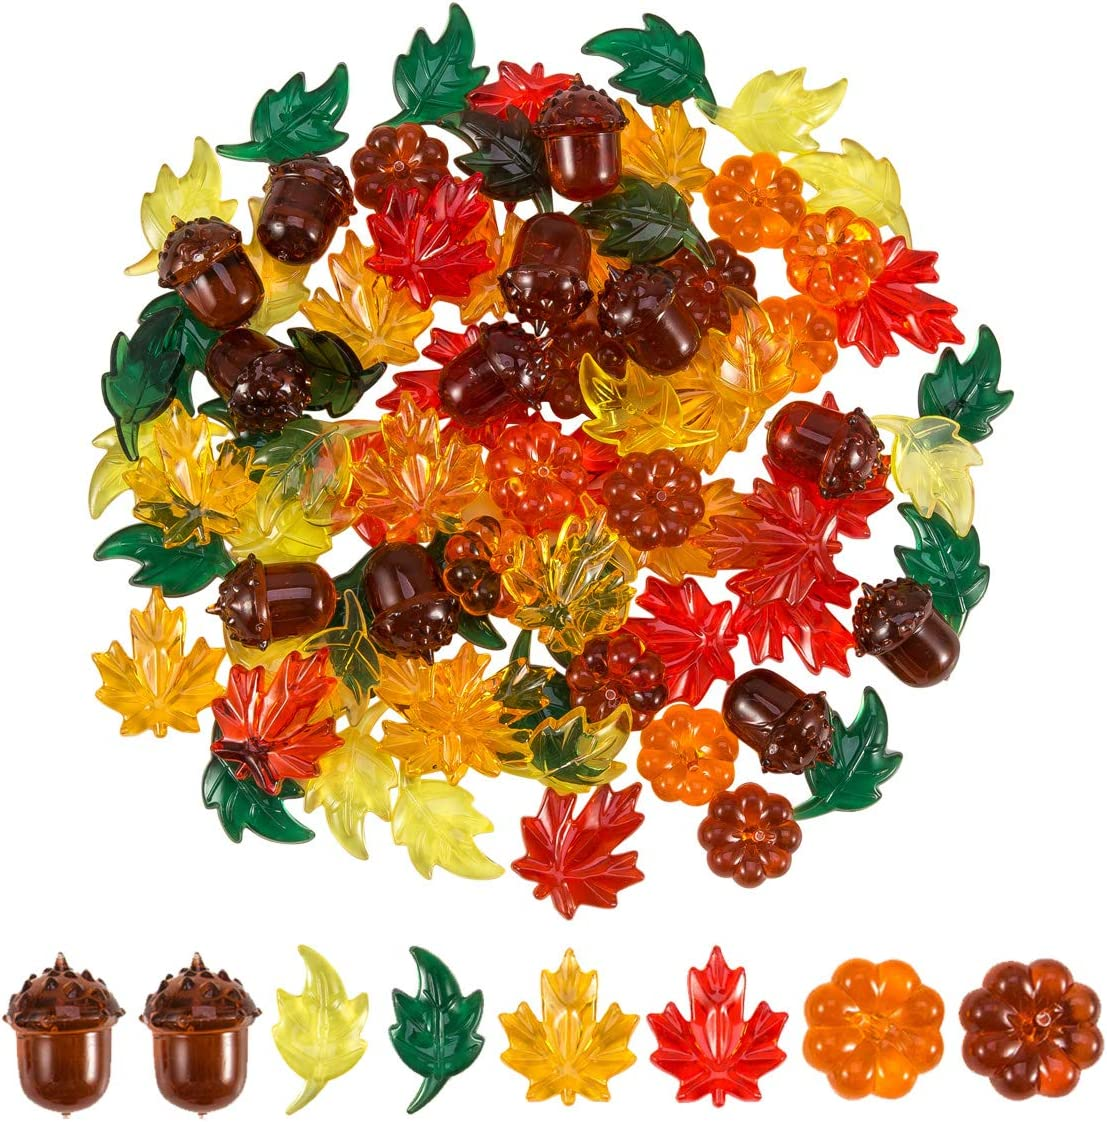 84 Pieces Acrylic Leaves Mini Acrylic Pumpkin Maple Leaves Acorns Crystals Gems for Thanksgiving Home Table Scatters Decoration Autumn Table Scatters Favor Vase Filler(5 Colors)